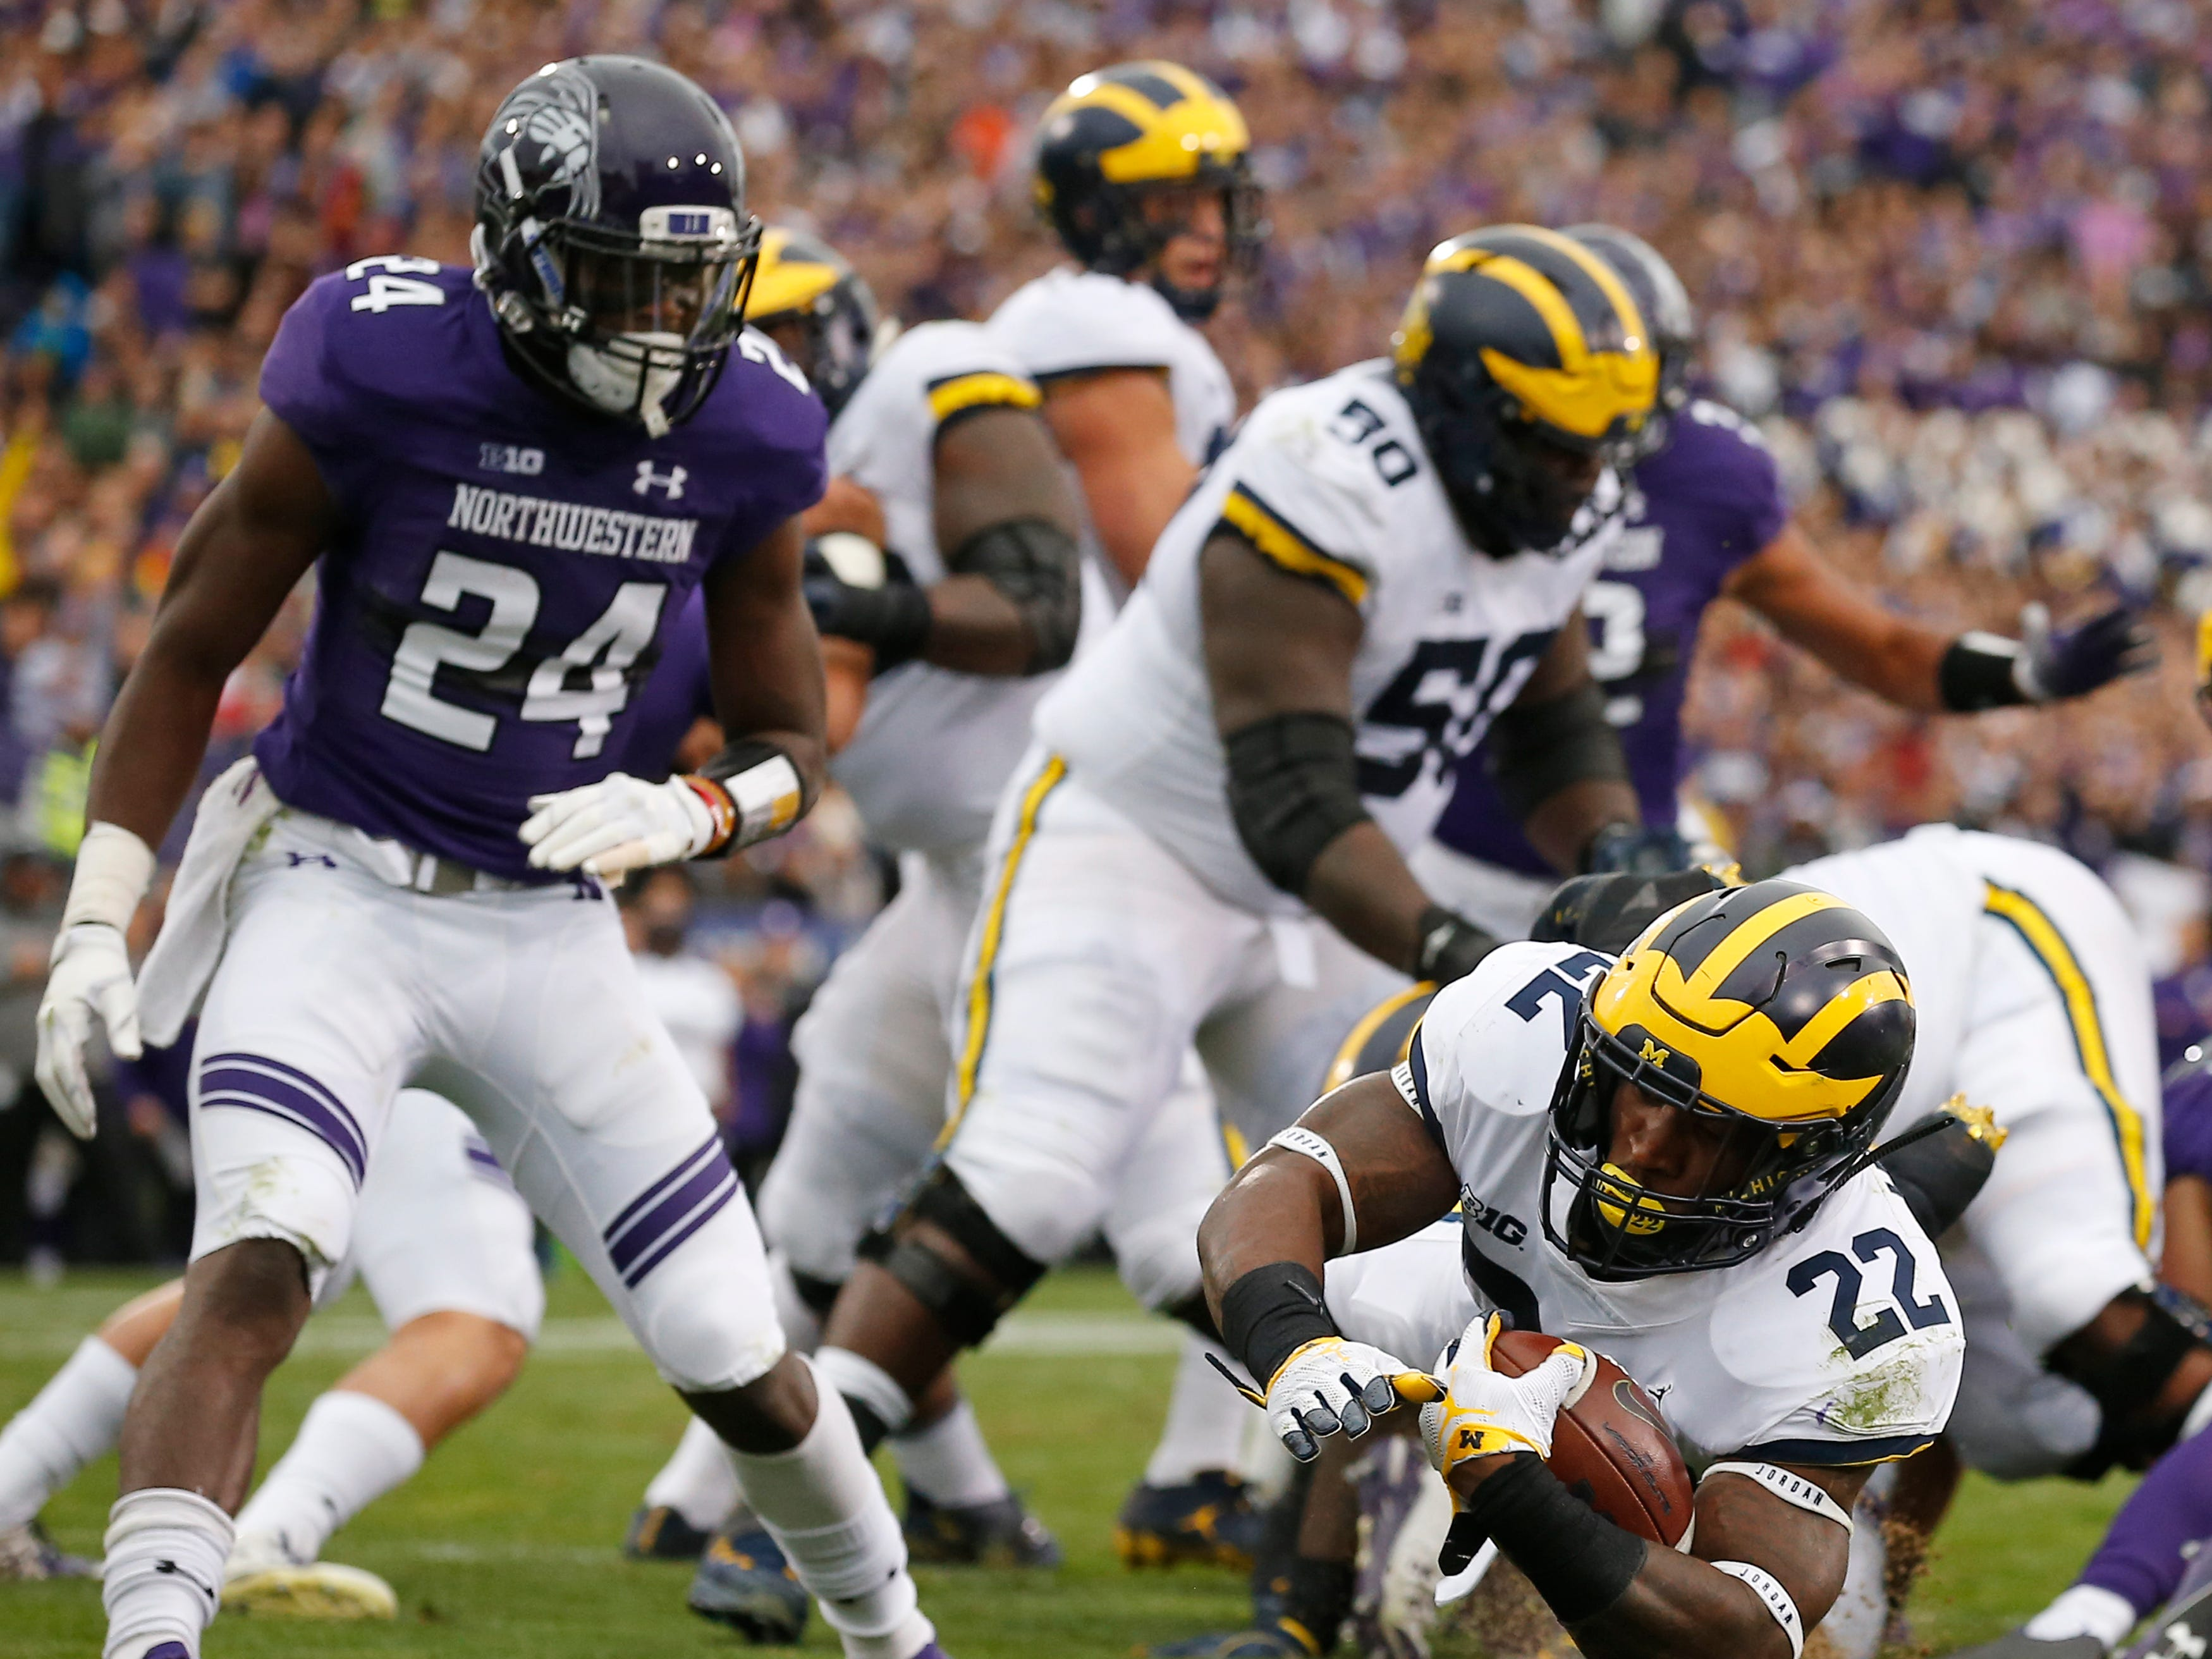 Michigan's Karan Higdon dives for a touchdown against Northwestern's Montre Hartage during the first half Saturday, Sept. 29, 2018, in Evanston, Ill.